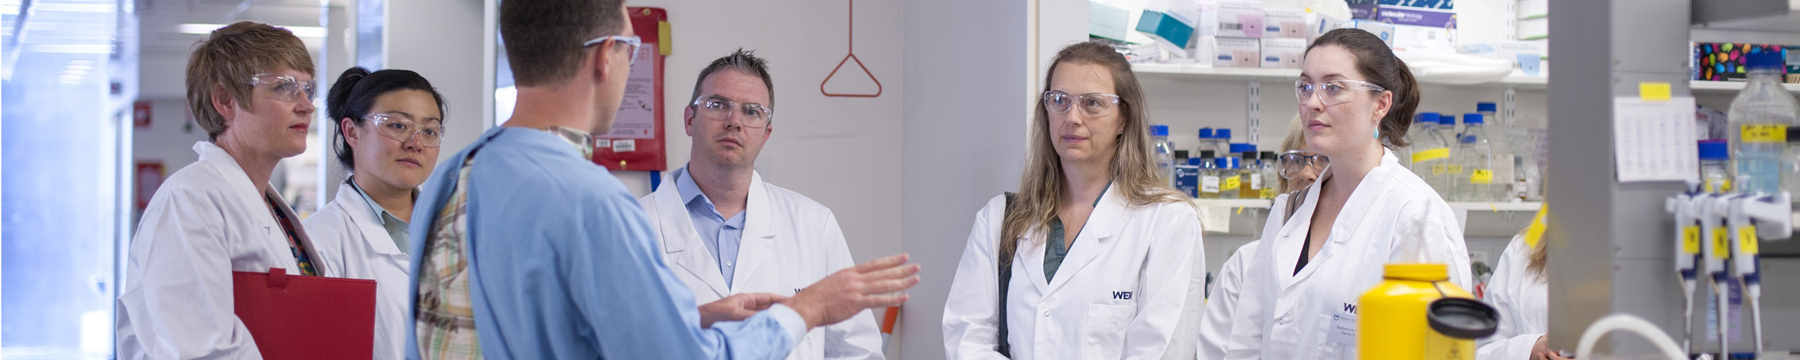 A scientist talking to a group in a lab